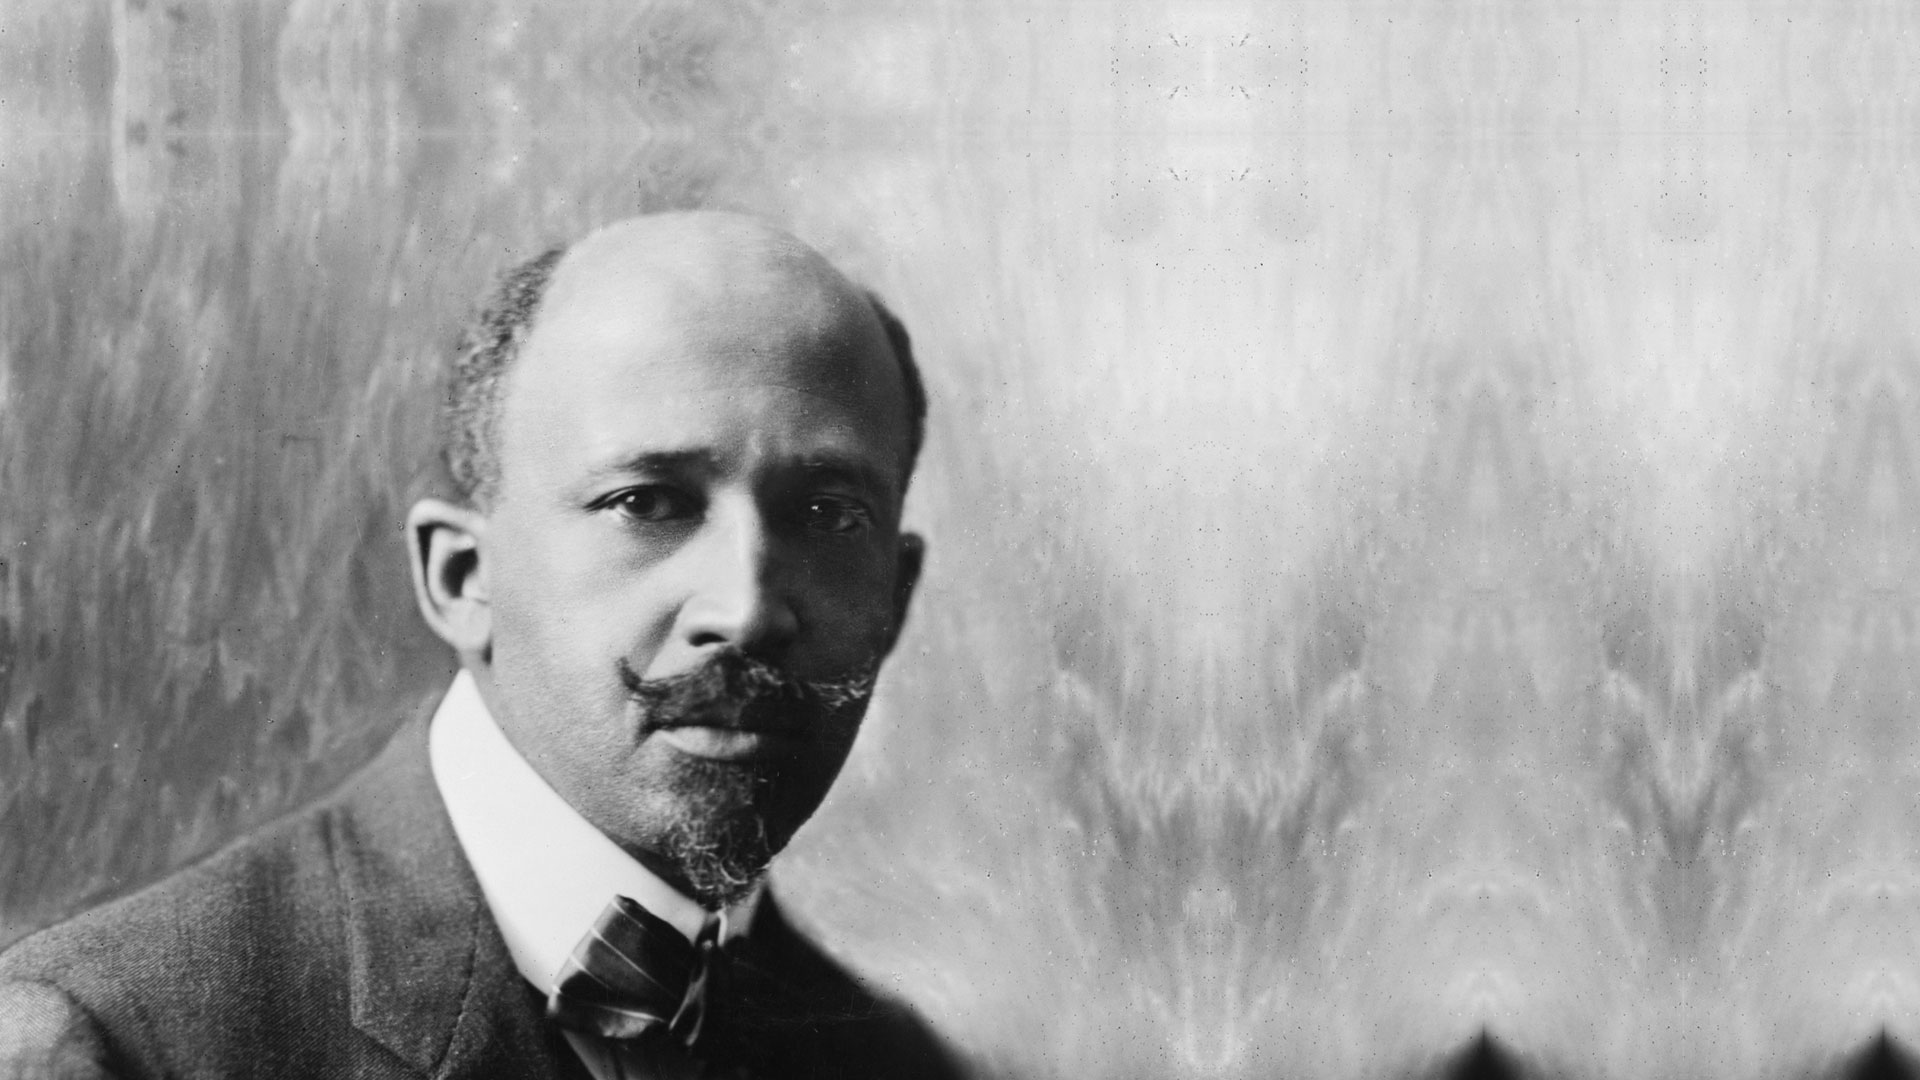 e b dubois of the Web du bois was an important figure in american civil rights history, and his idea of the double consciousness delved into what it felt like to live as a black person in a white people's world.